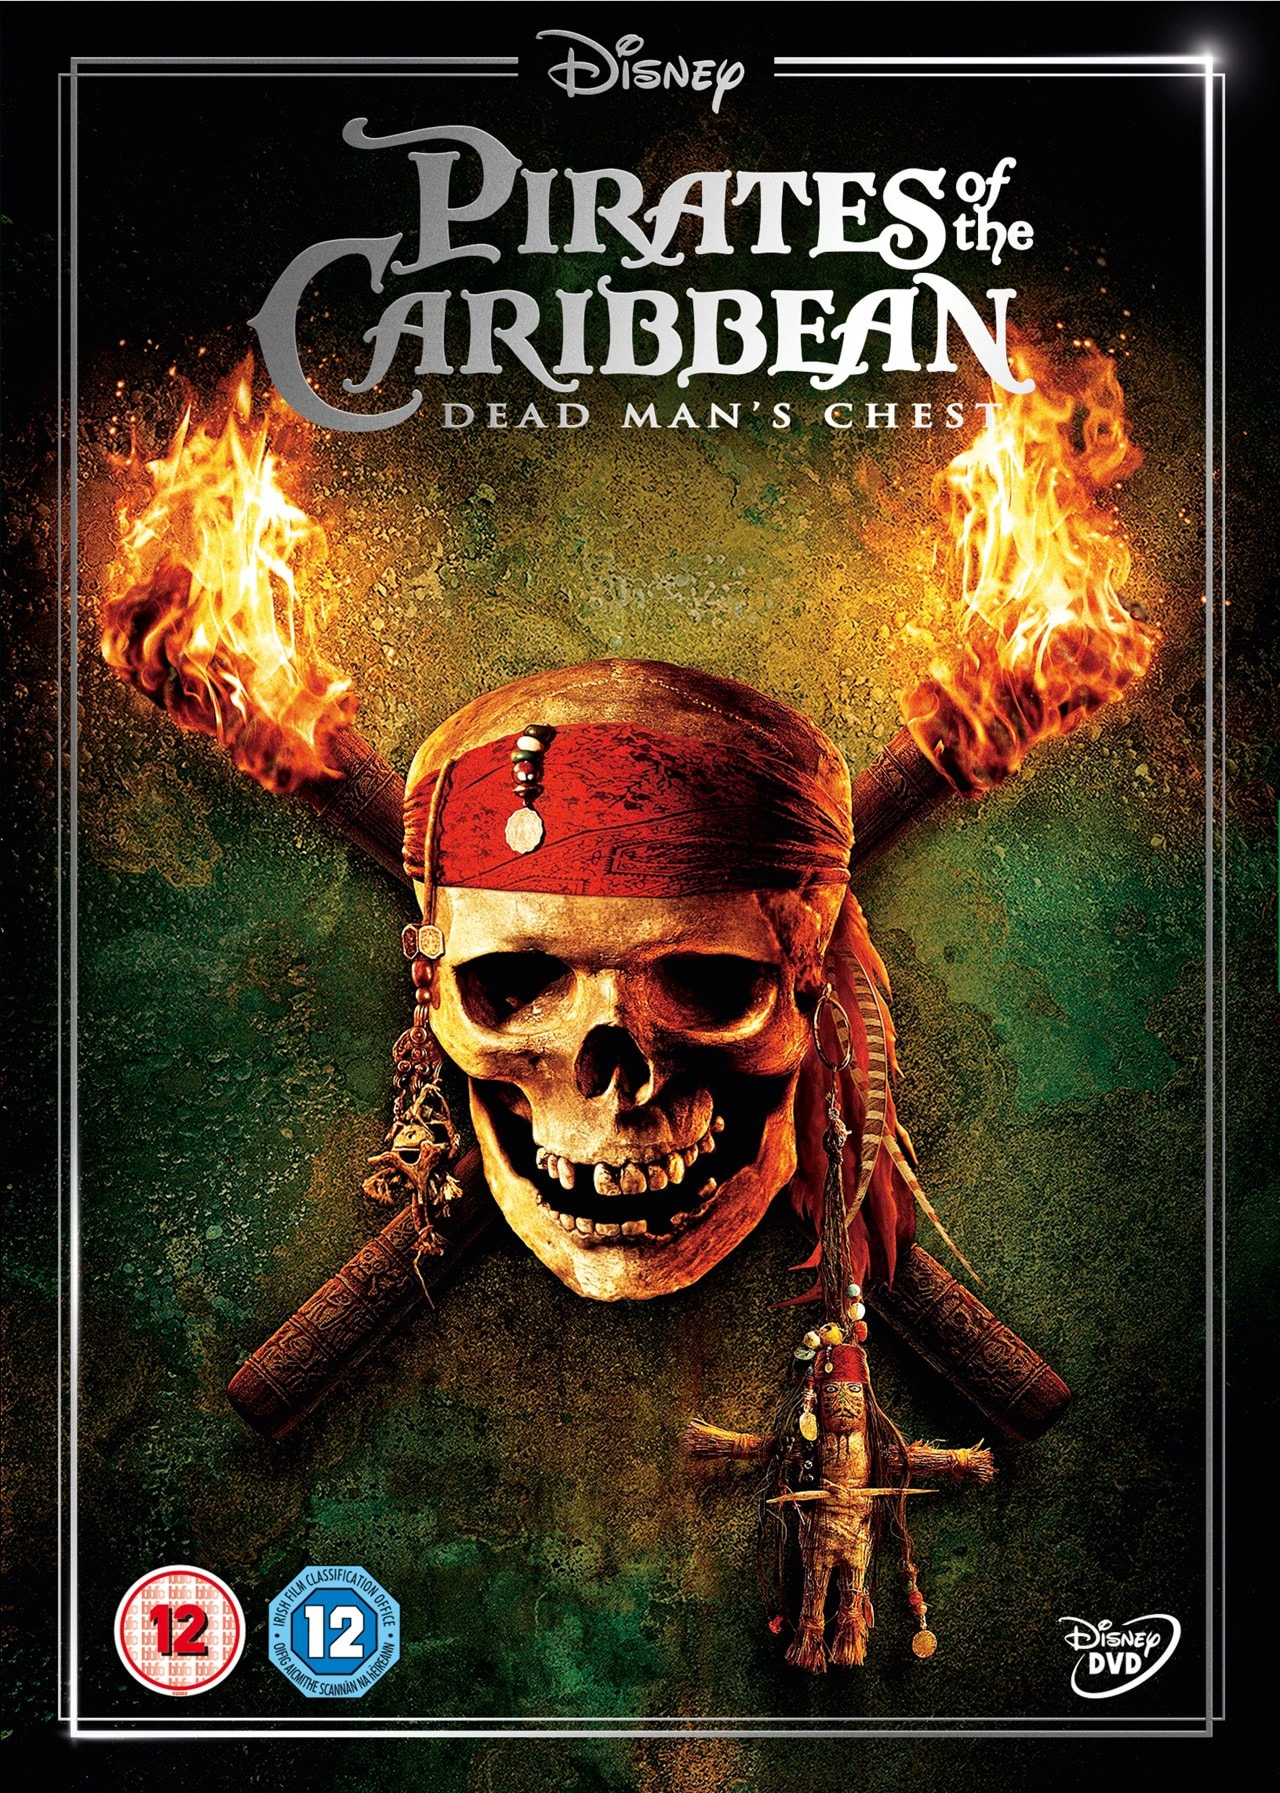 Pirates of the Caribbean: Dead Man's Chest - 1